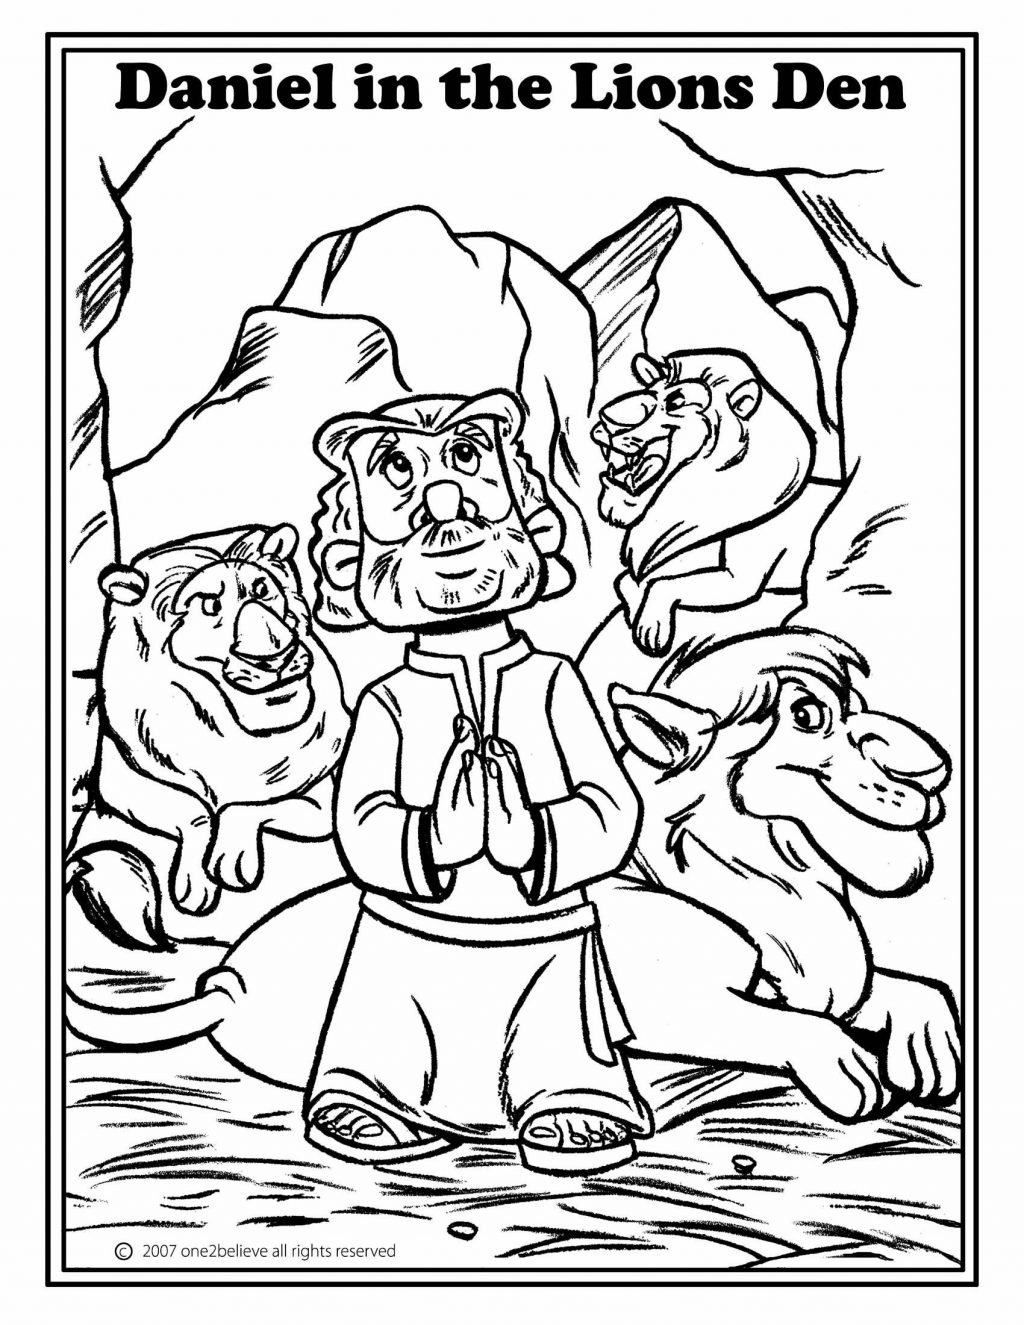 Coloring Pages ~ Freee Story Coloring Pages For Kids Page - Free Printable Bible Story Coloring Pages